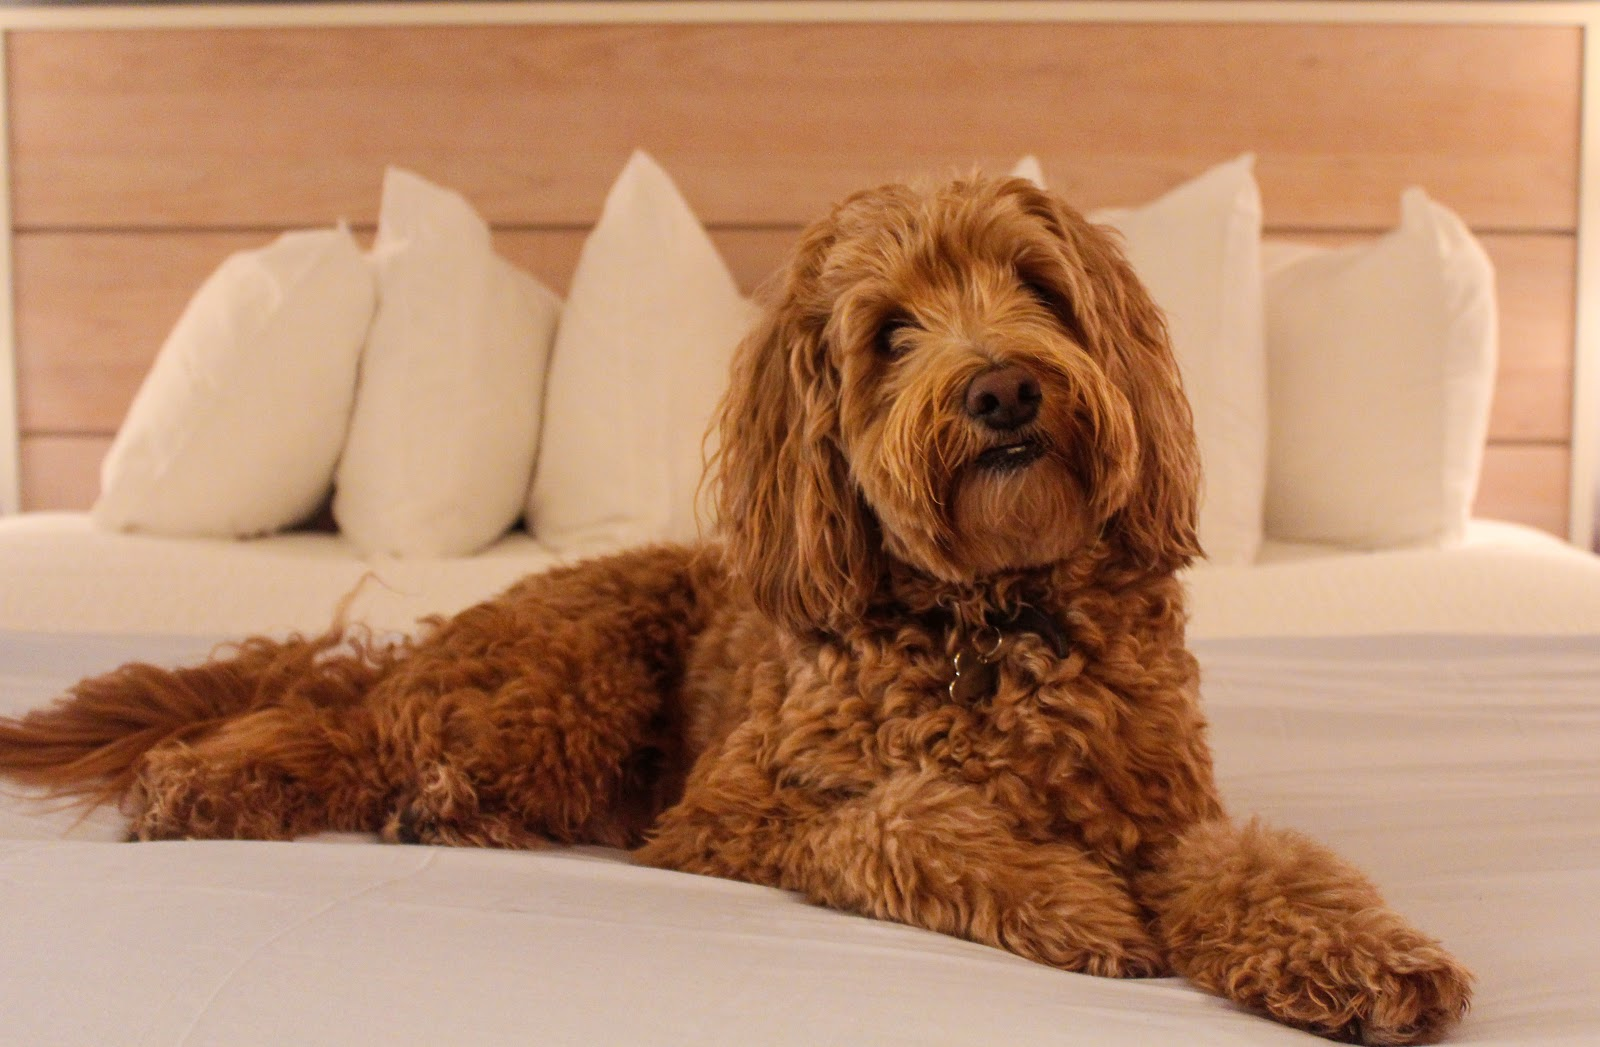 Pet friendly rooms available for only a $20/night fee.